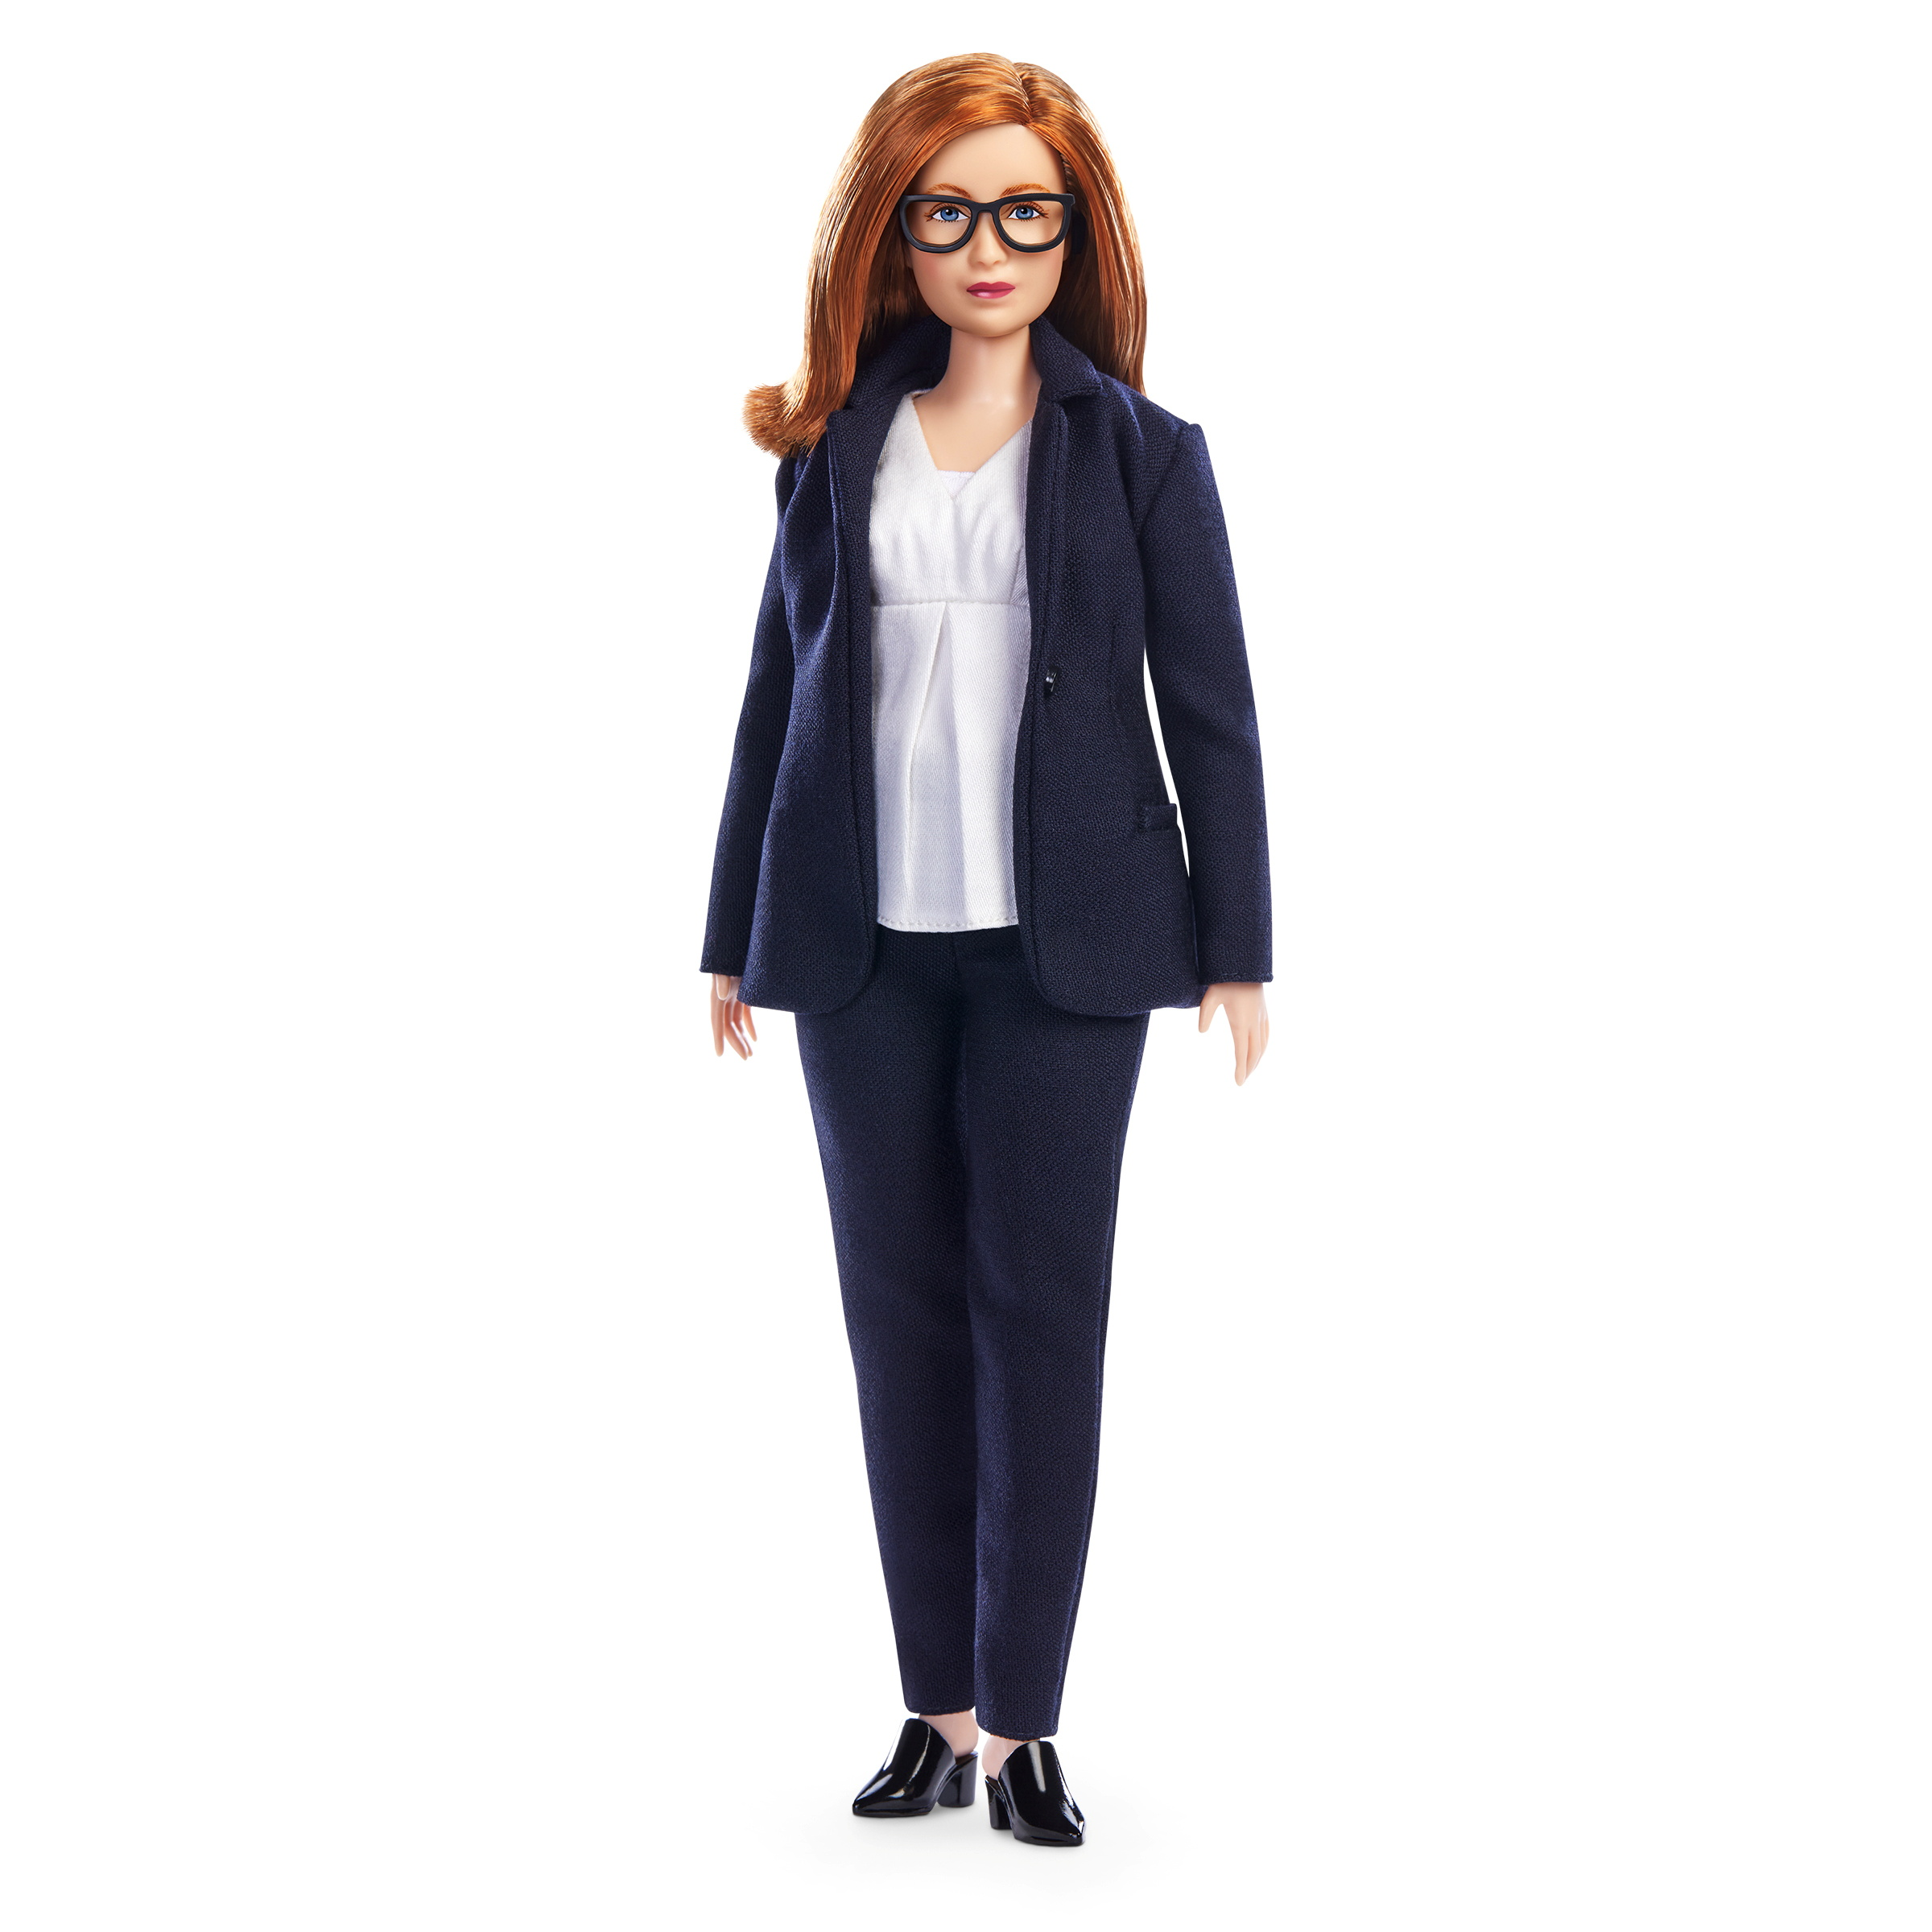 An undated handout image of a Barbie doll made in the likeness of Sarah Gilbert, the Oxford University professor who co-designed the Oxford/AstraZeneca vaccine. University of Oxford/via REUTERS